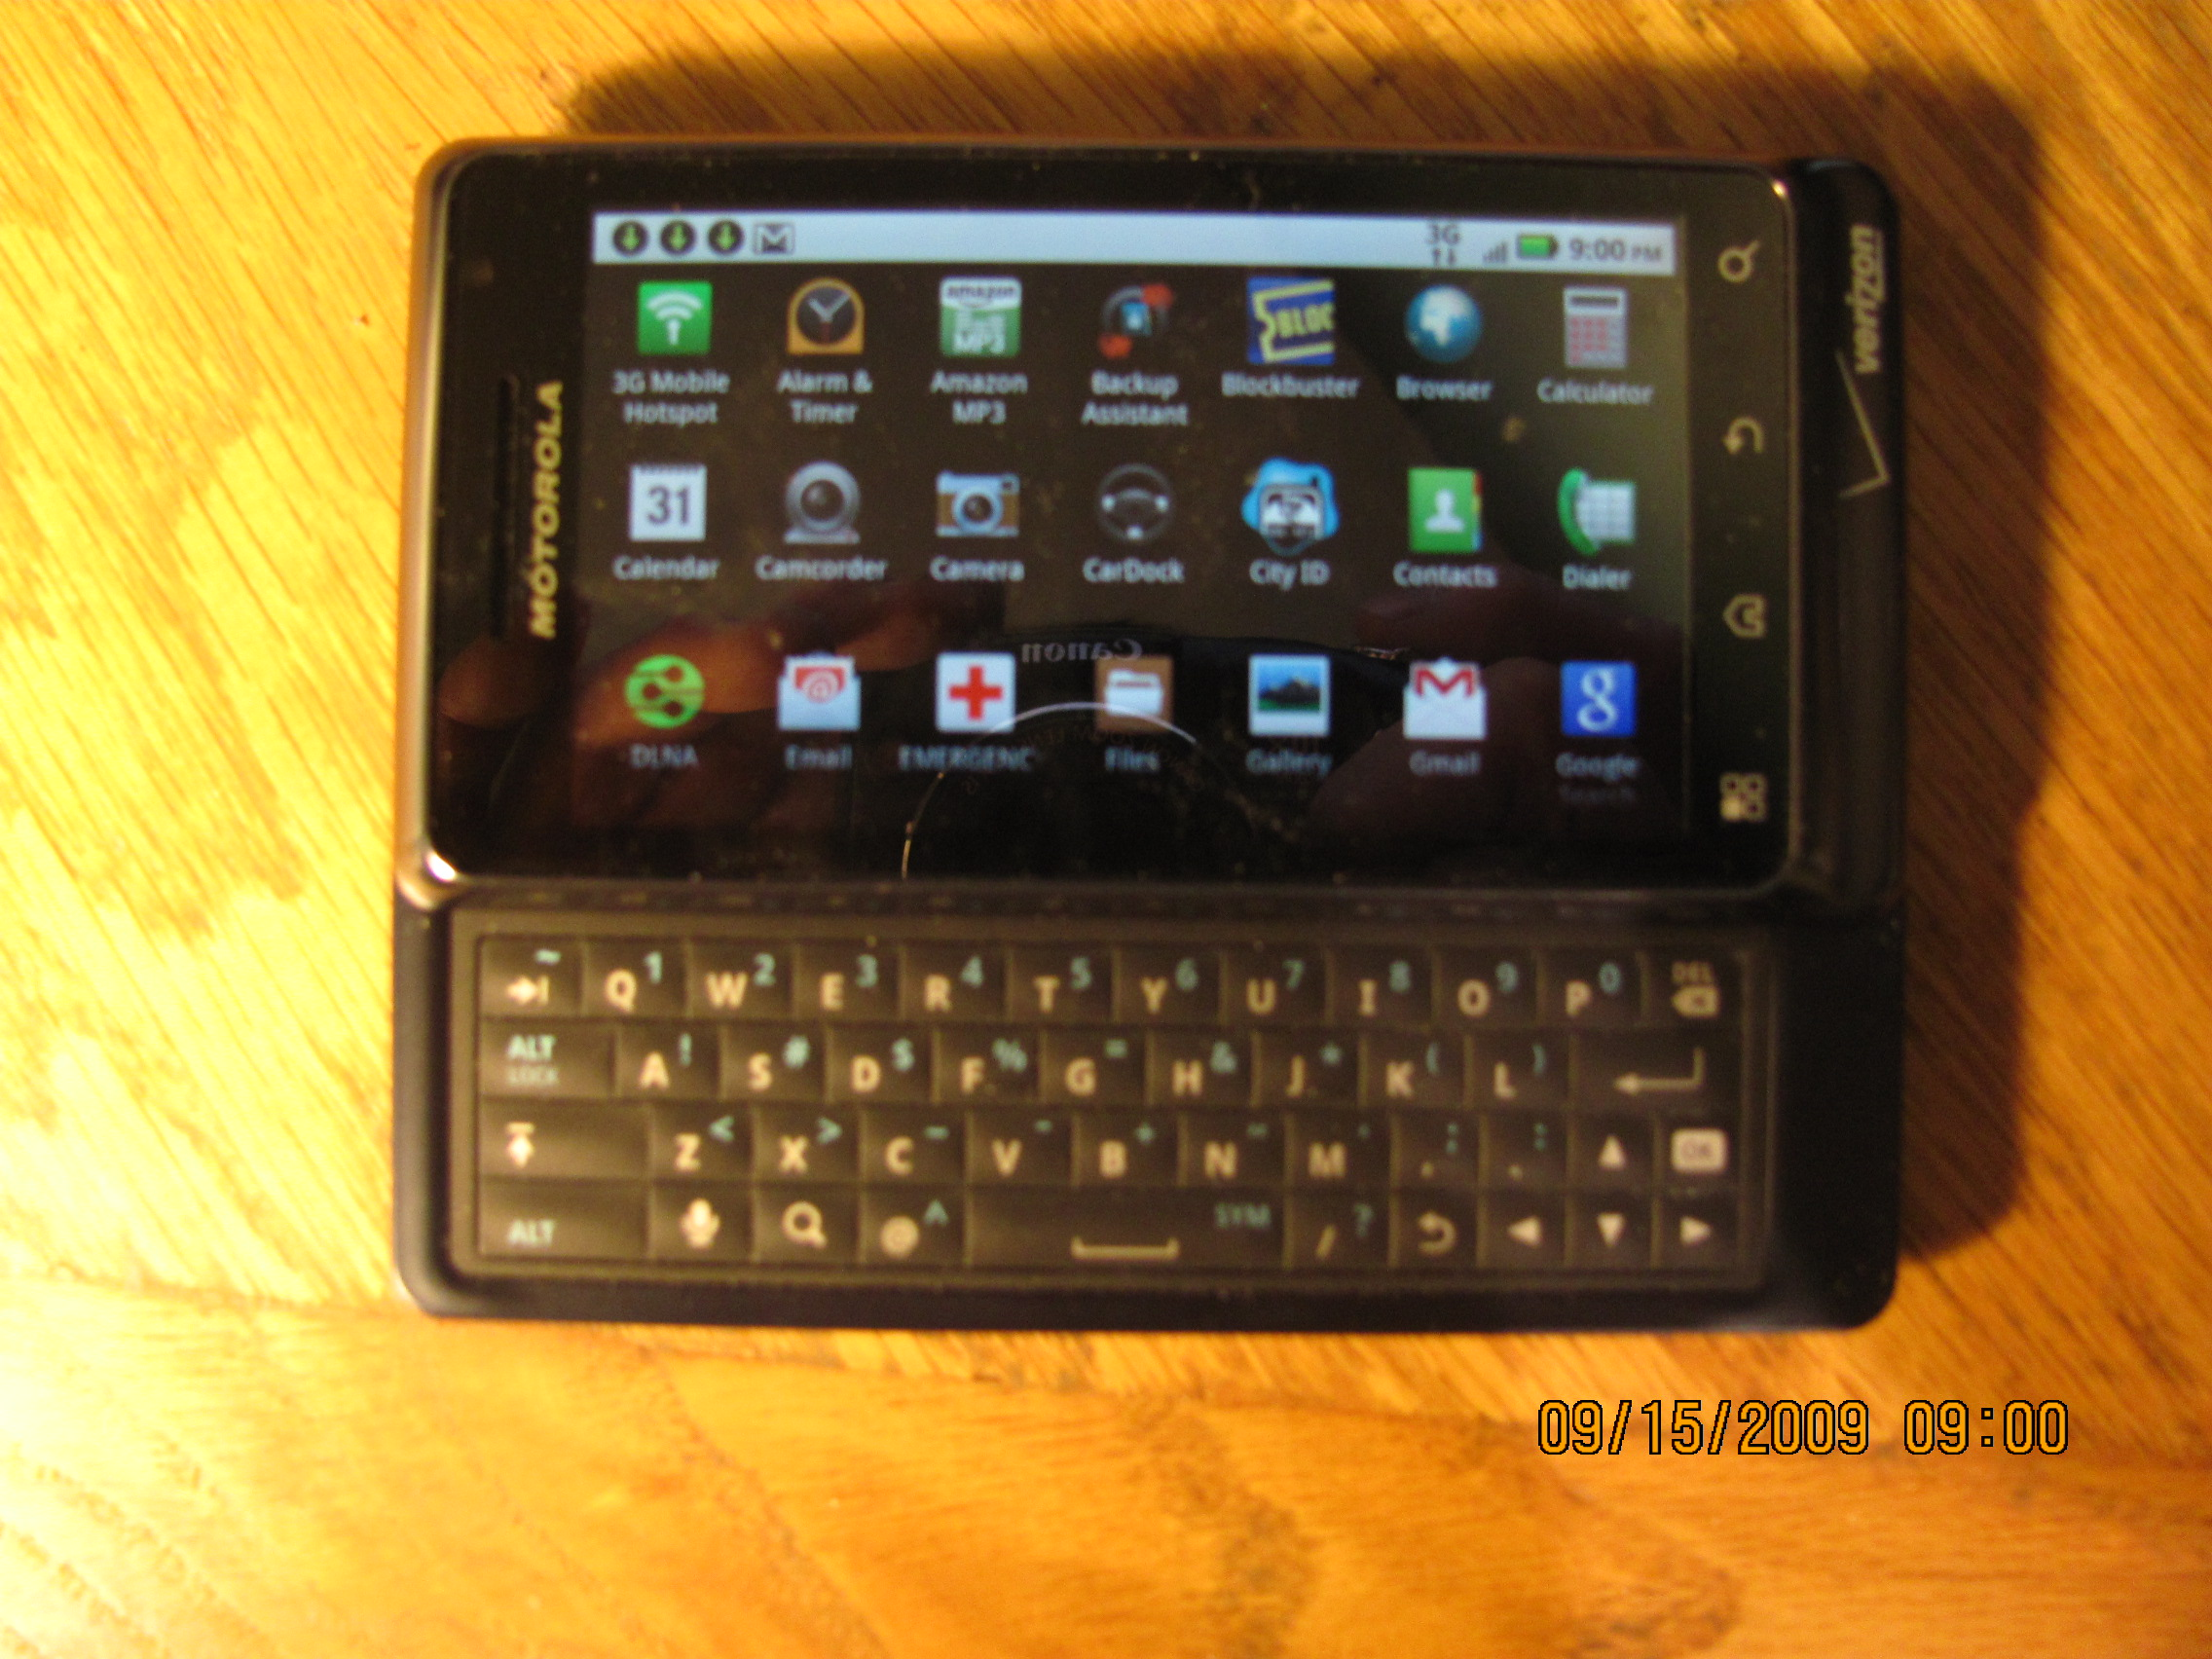 Droid 2 Marginally Improves on Original Droid